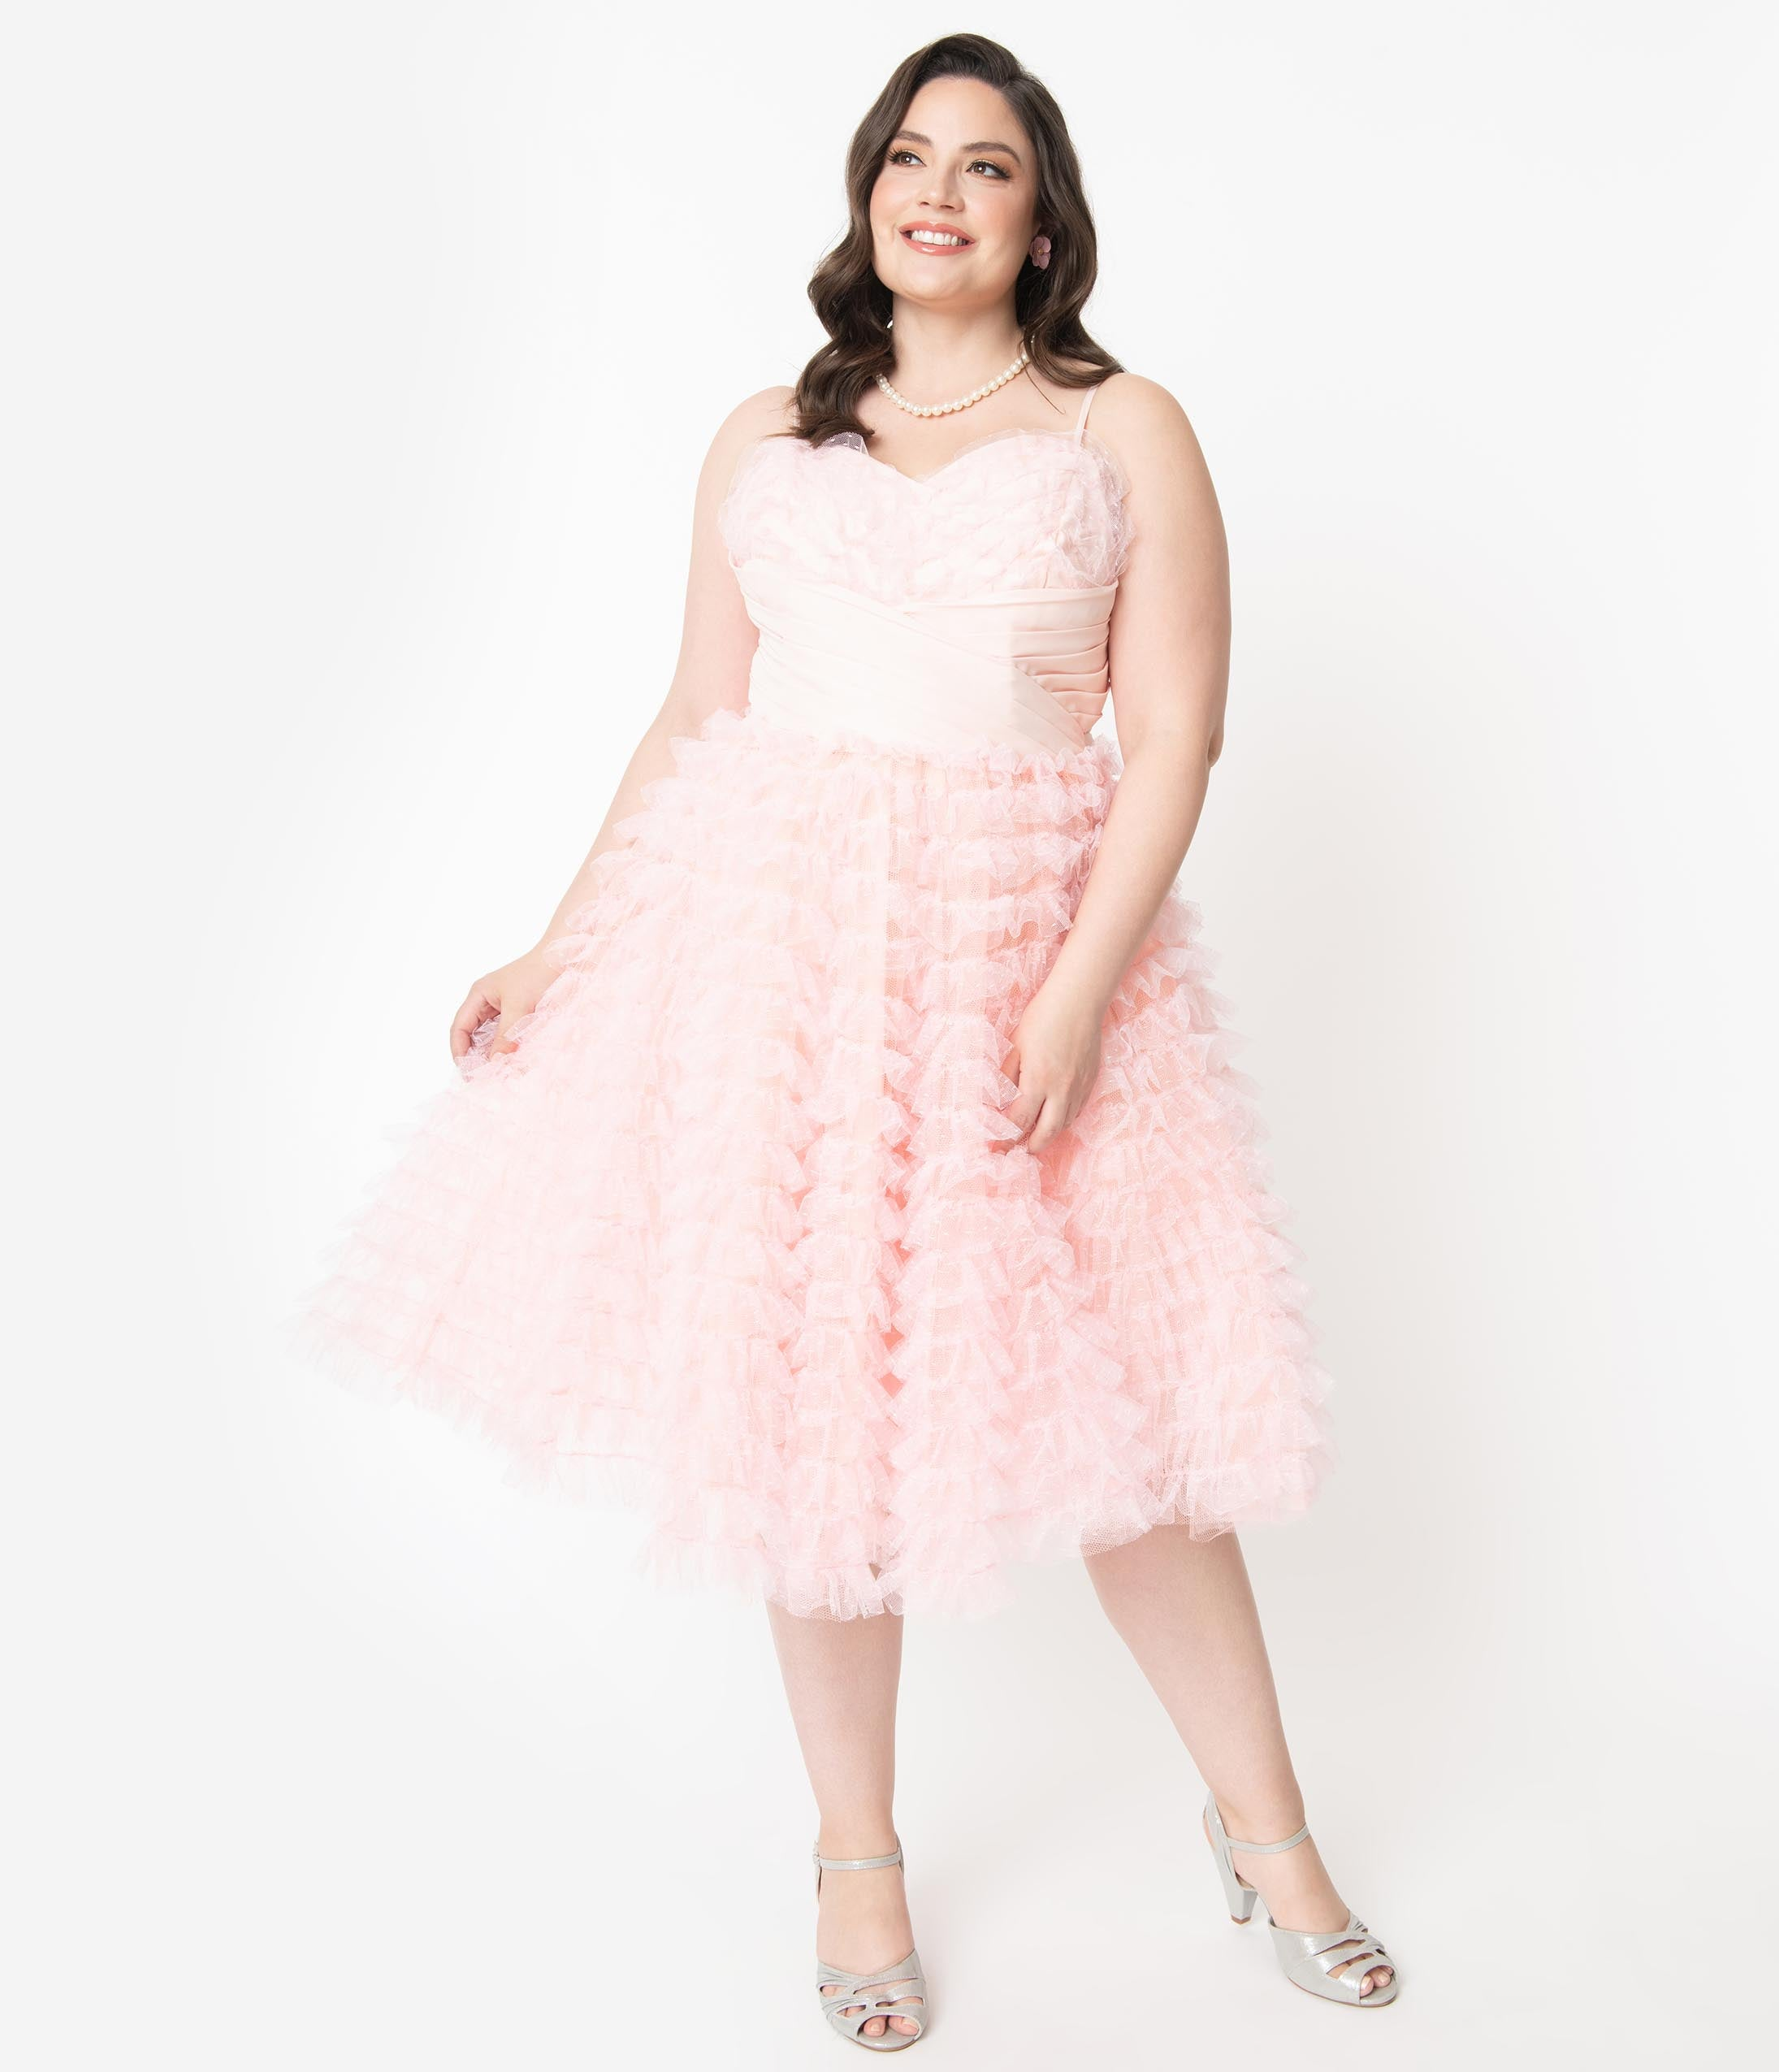 500 Vintage Style Dresses for Sale | Vintage Inspired Dresses Unique Vintage Plus Size 1950S Pale Pink Ruffled Tulle Sweetheart Cupcake Swing Dress $110.00 AT vintagedancer.com